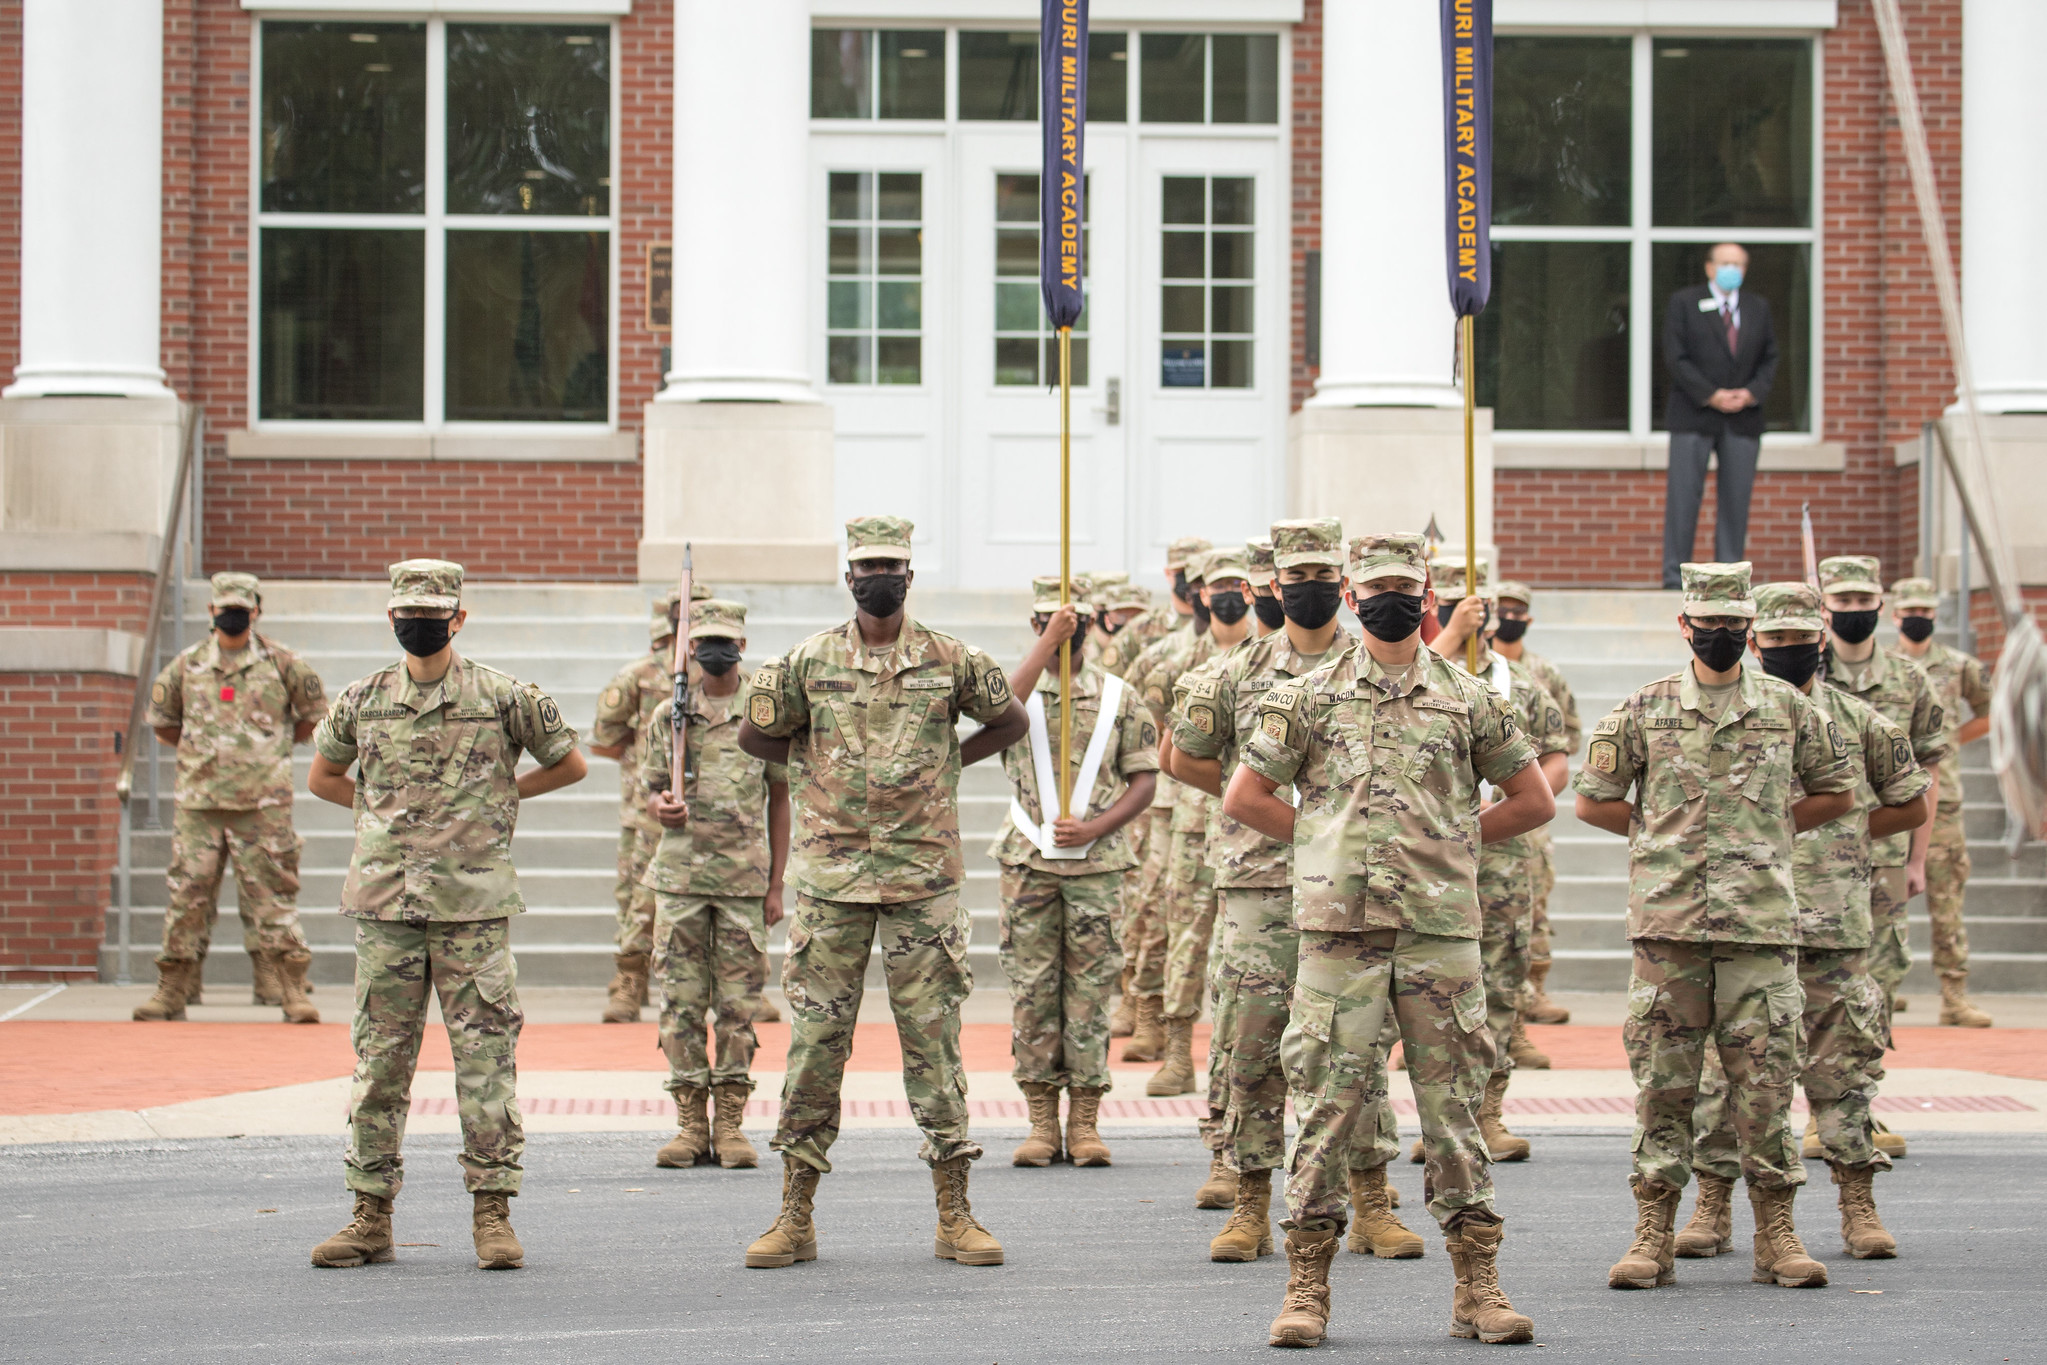 Missouri Military Academy Corps Of Cadets Nine Eleven Terrorist Attacks Remembrance Ceremony Planned For Saturday